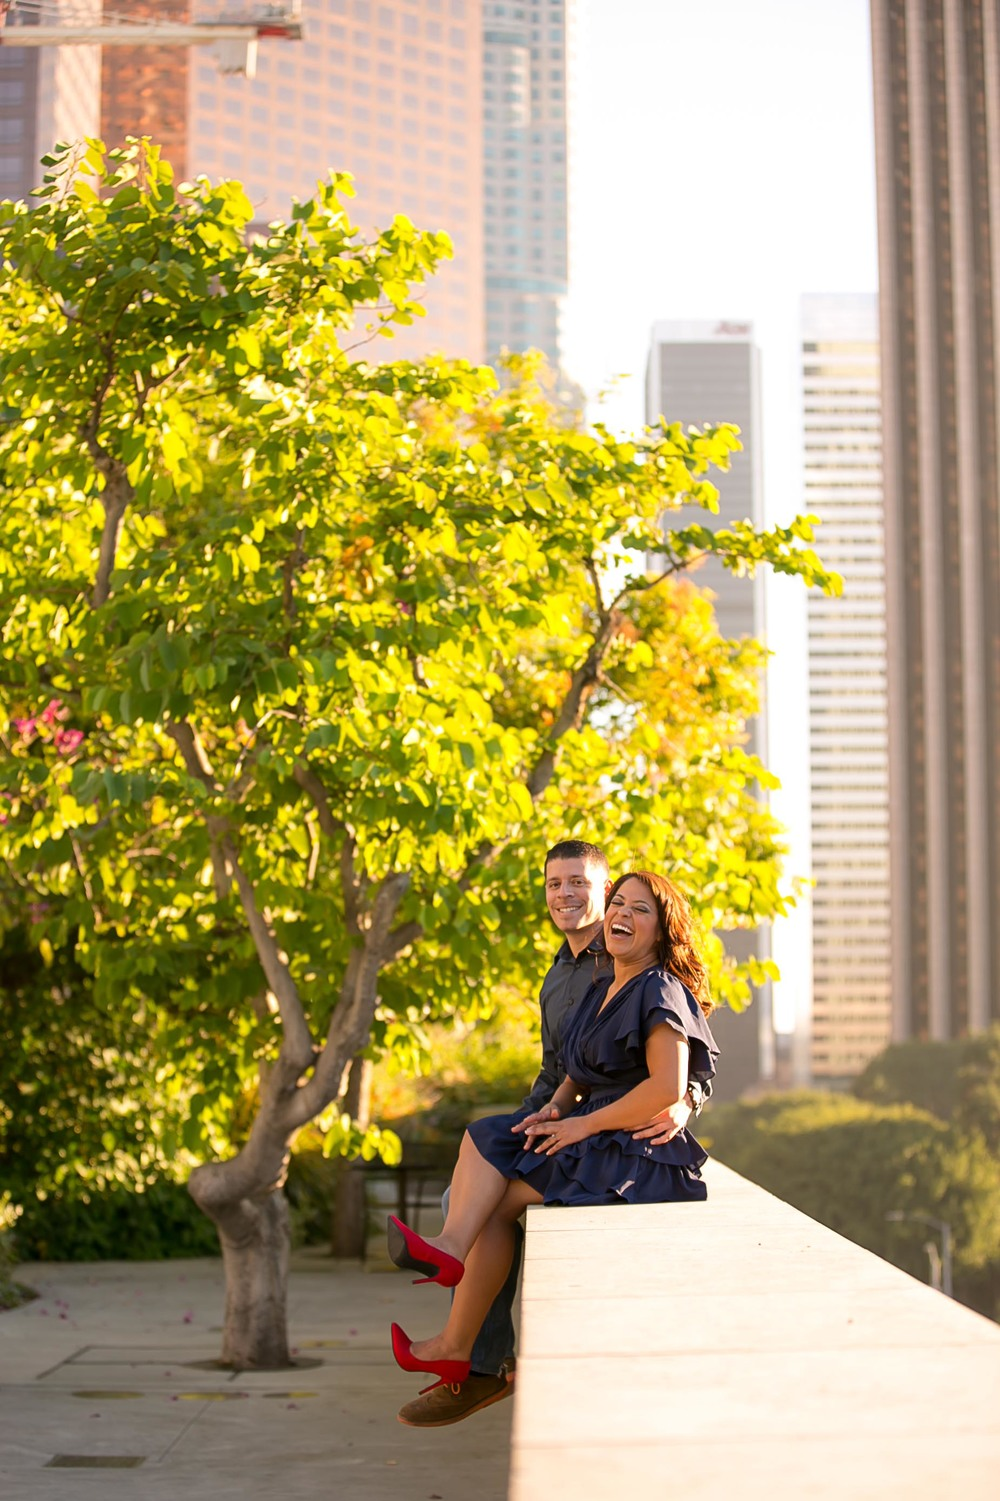 BLOG-JISHIEL-ERNESTO [DOWNTOWN LA ENGAGEMENT] CHRIS HOLT PHOTOGRAPHY_006.jpg